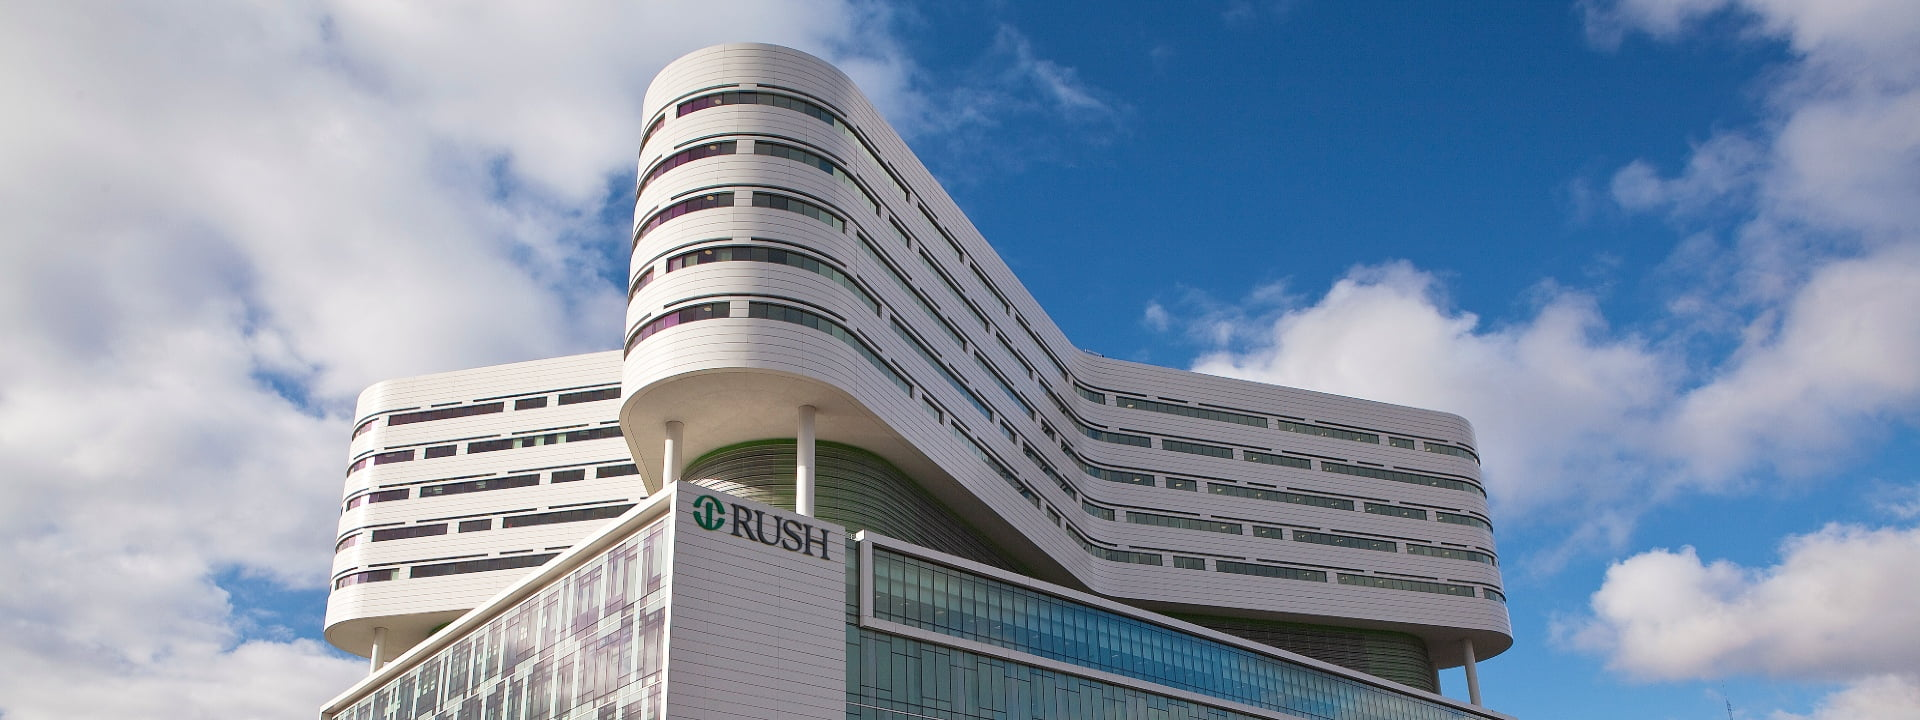 Exterior view of Rush Tower building